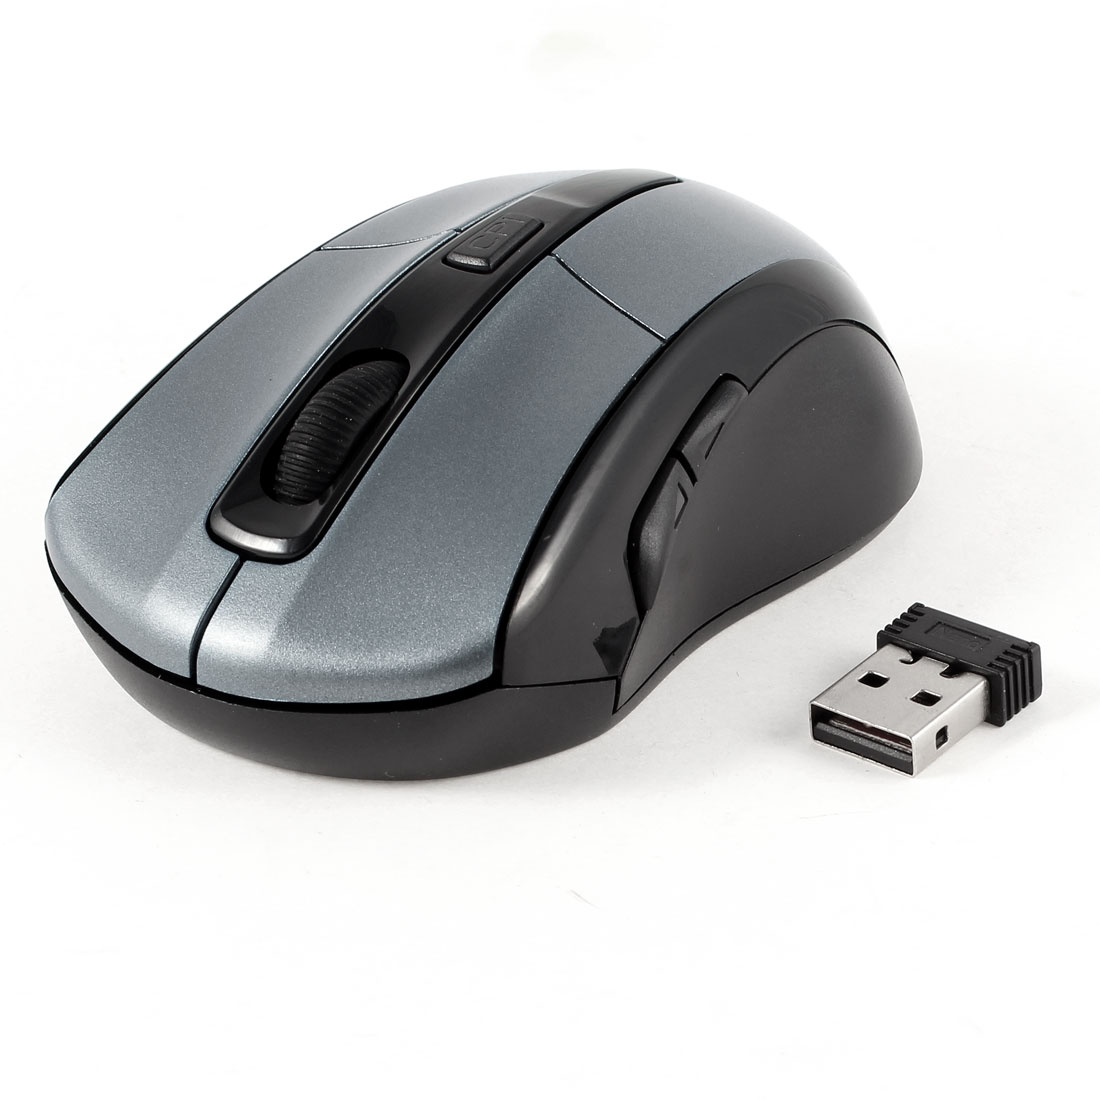 2.4GHz Wireless Optical Mouse Mice Black Gray + USB Receiver for PC Computer